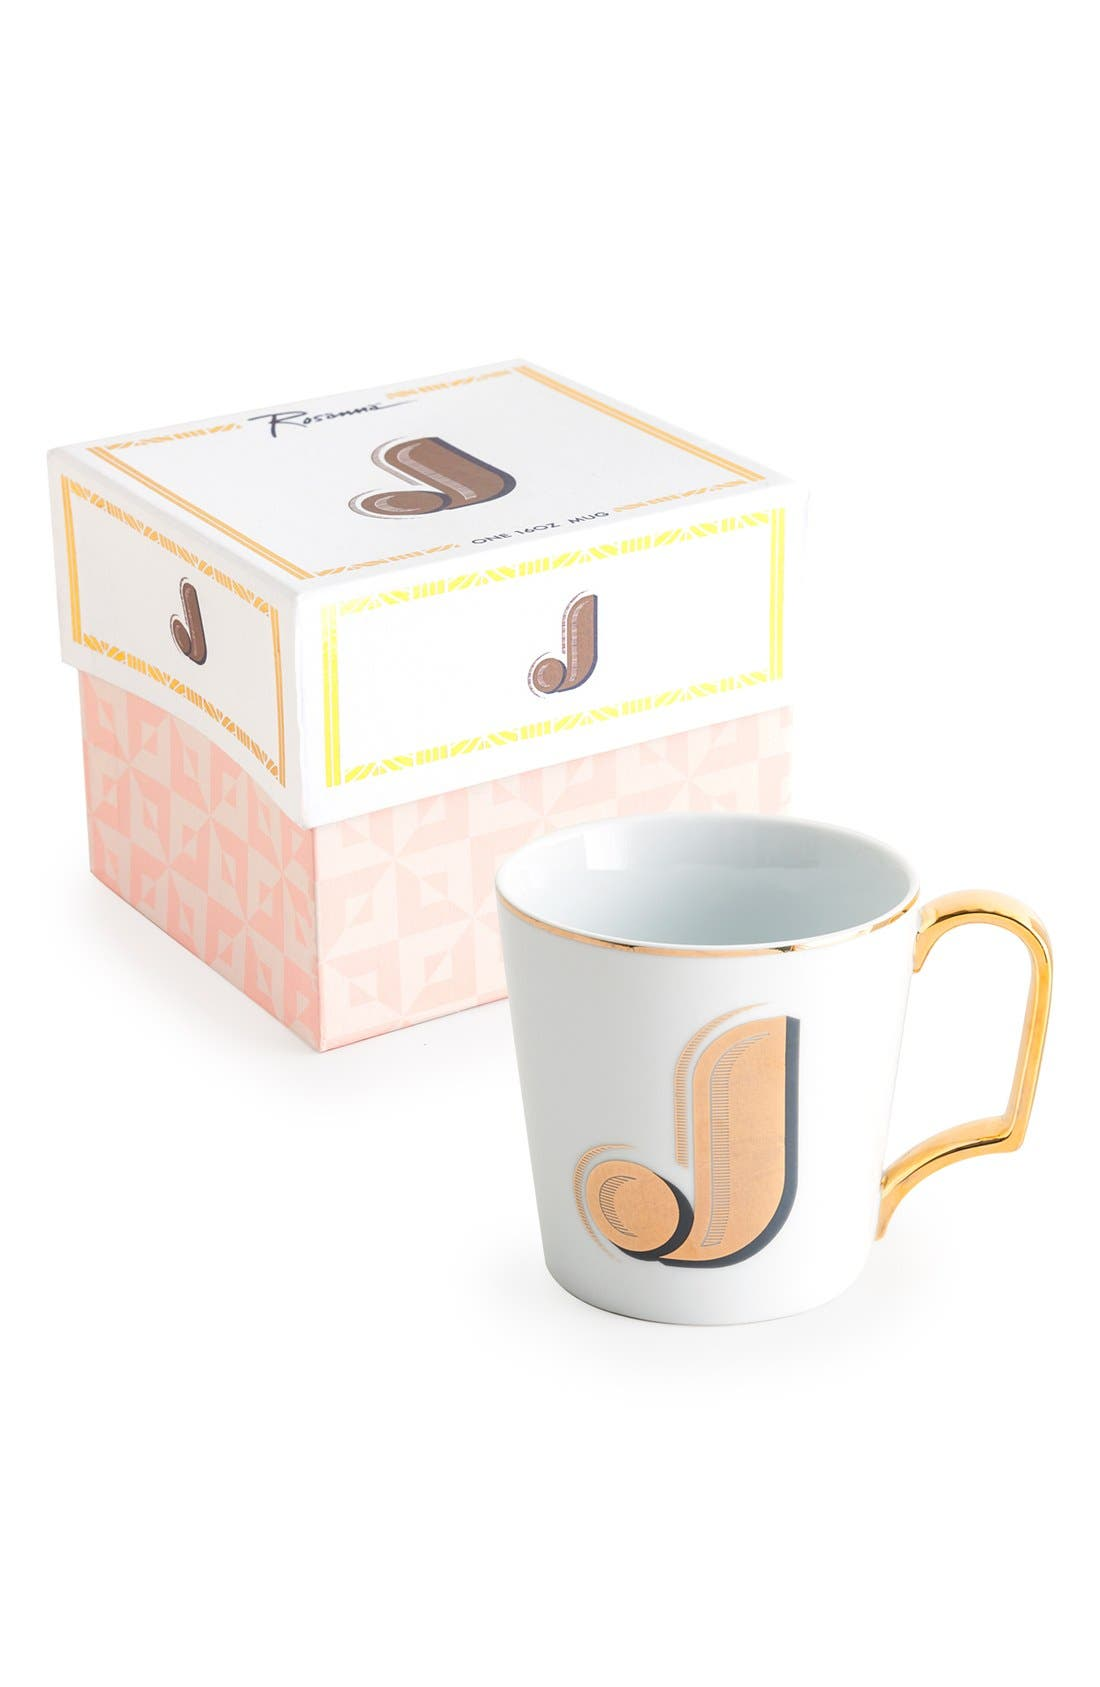 Monogram Porcelain Coffee Mug,                             Main thumbnail 8, color,